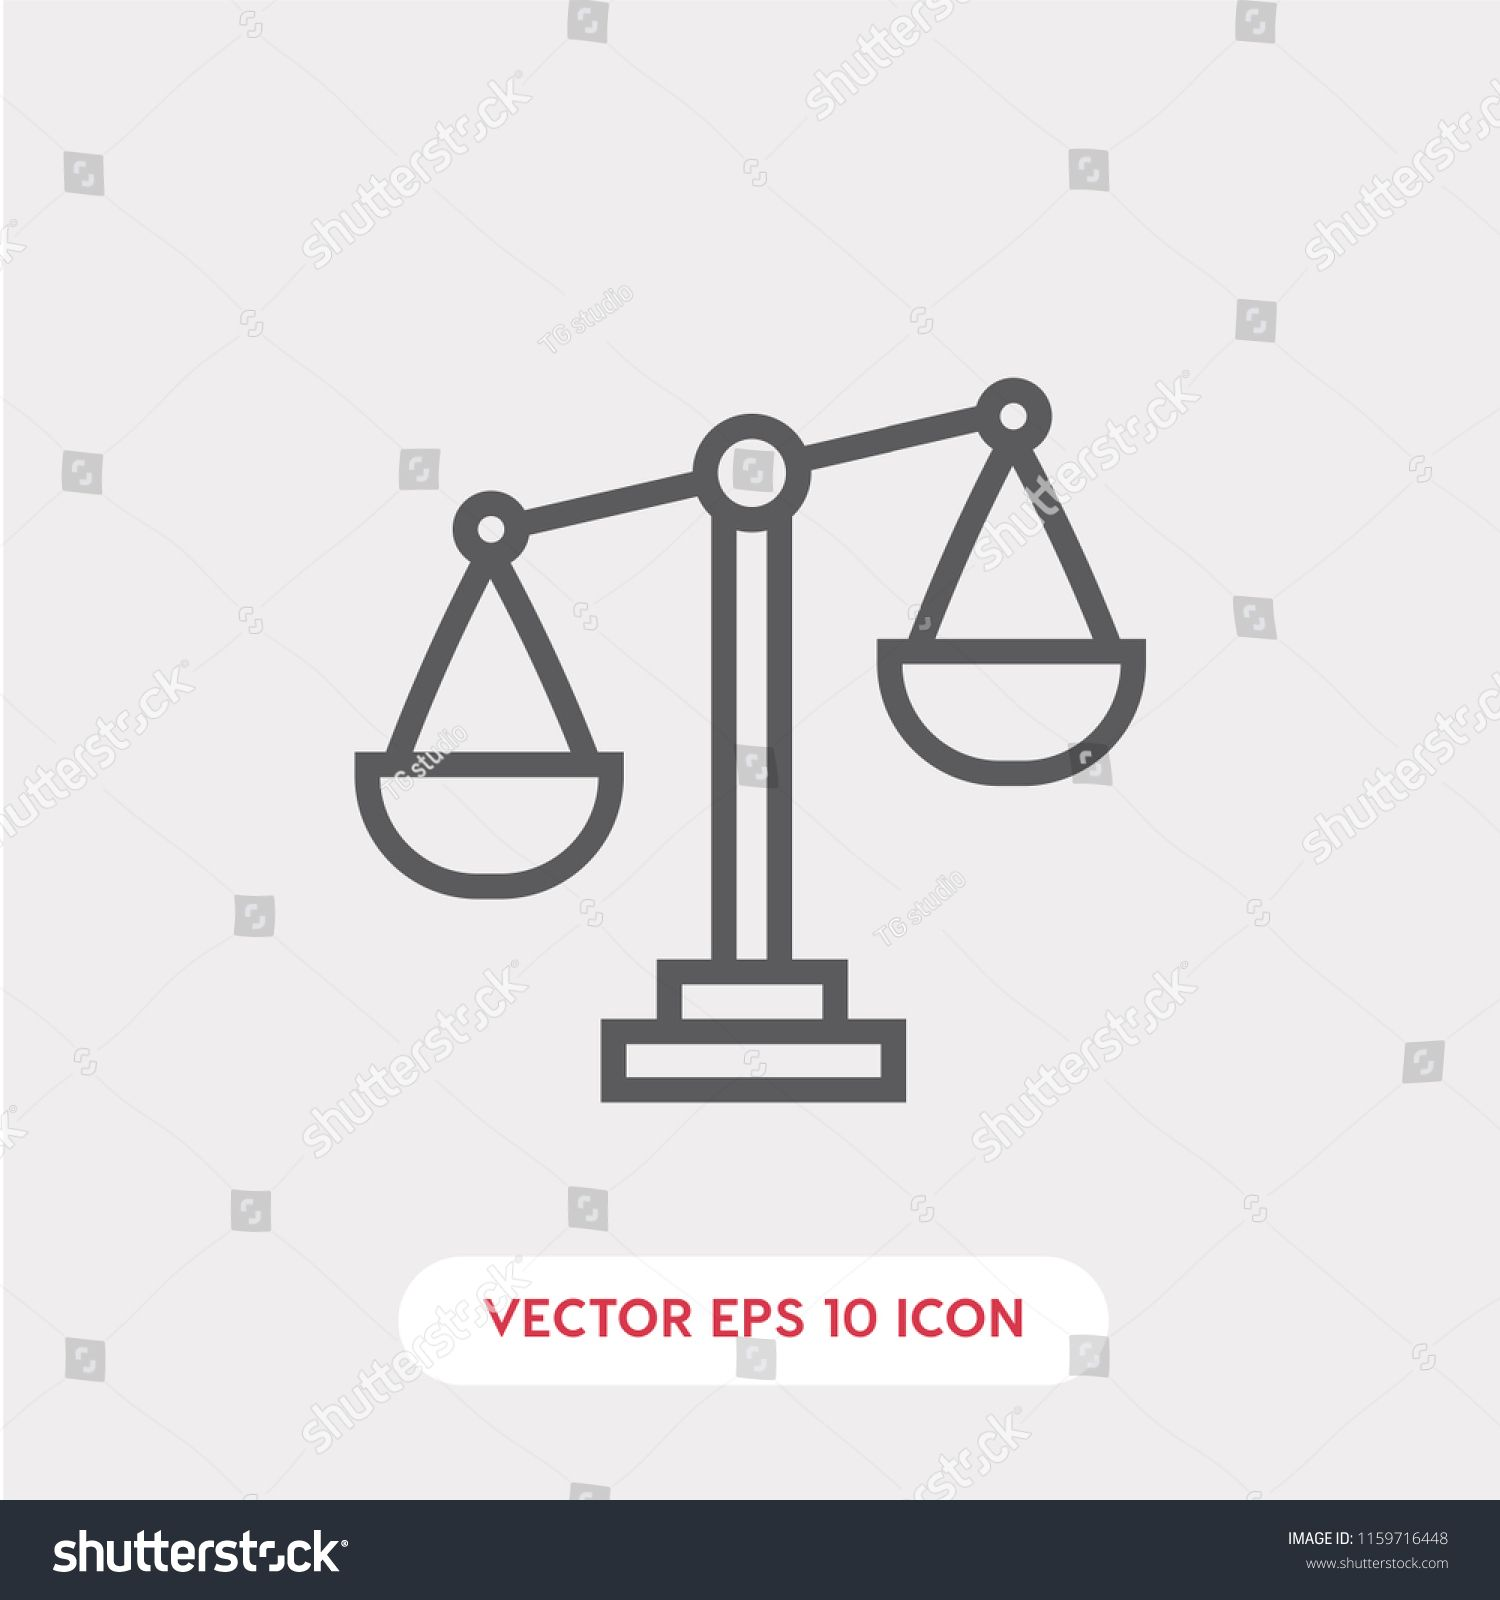 Law Vector Icon Justice Symbol Linear Style Sign For Mobile Concept And Web Design Law And Balance Symbol Logo Justice Symbol Vector Icons Logo Illustration